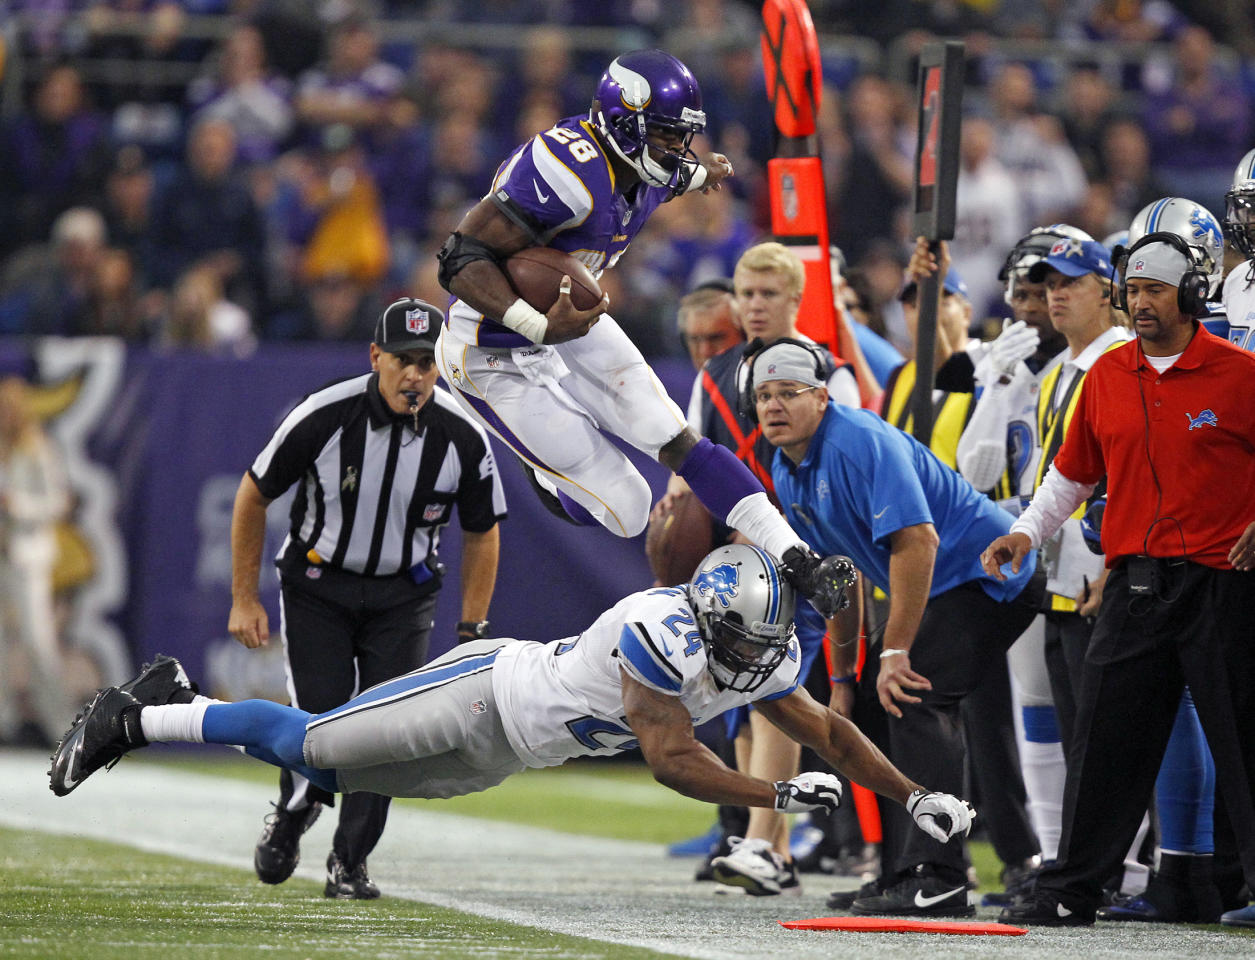 Minnesota Vikings running back Adrian Peterson (28) leaps over Detroit Lions safety Erik Coleman (24) during the second half of their NFL football game in Minneapolis, November 11, 2012. REUTERS/Eric Miller (UNITED STATES - Tags: SPORT FOOTBALL TPX IMAGES OF THE DAY)